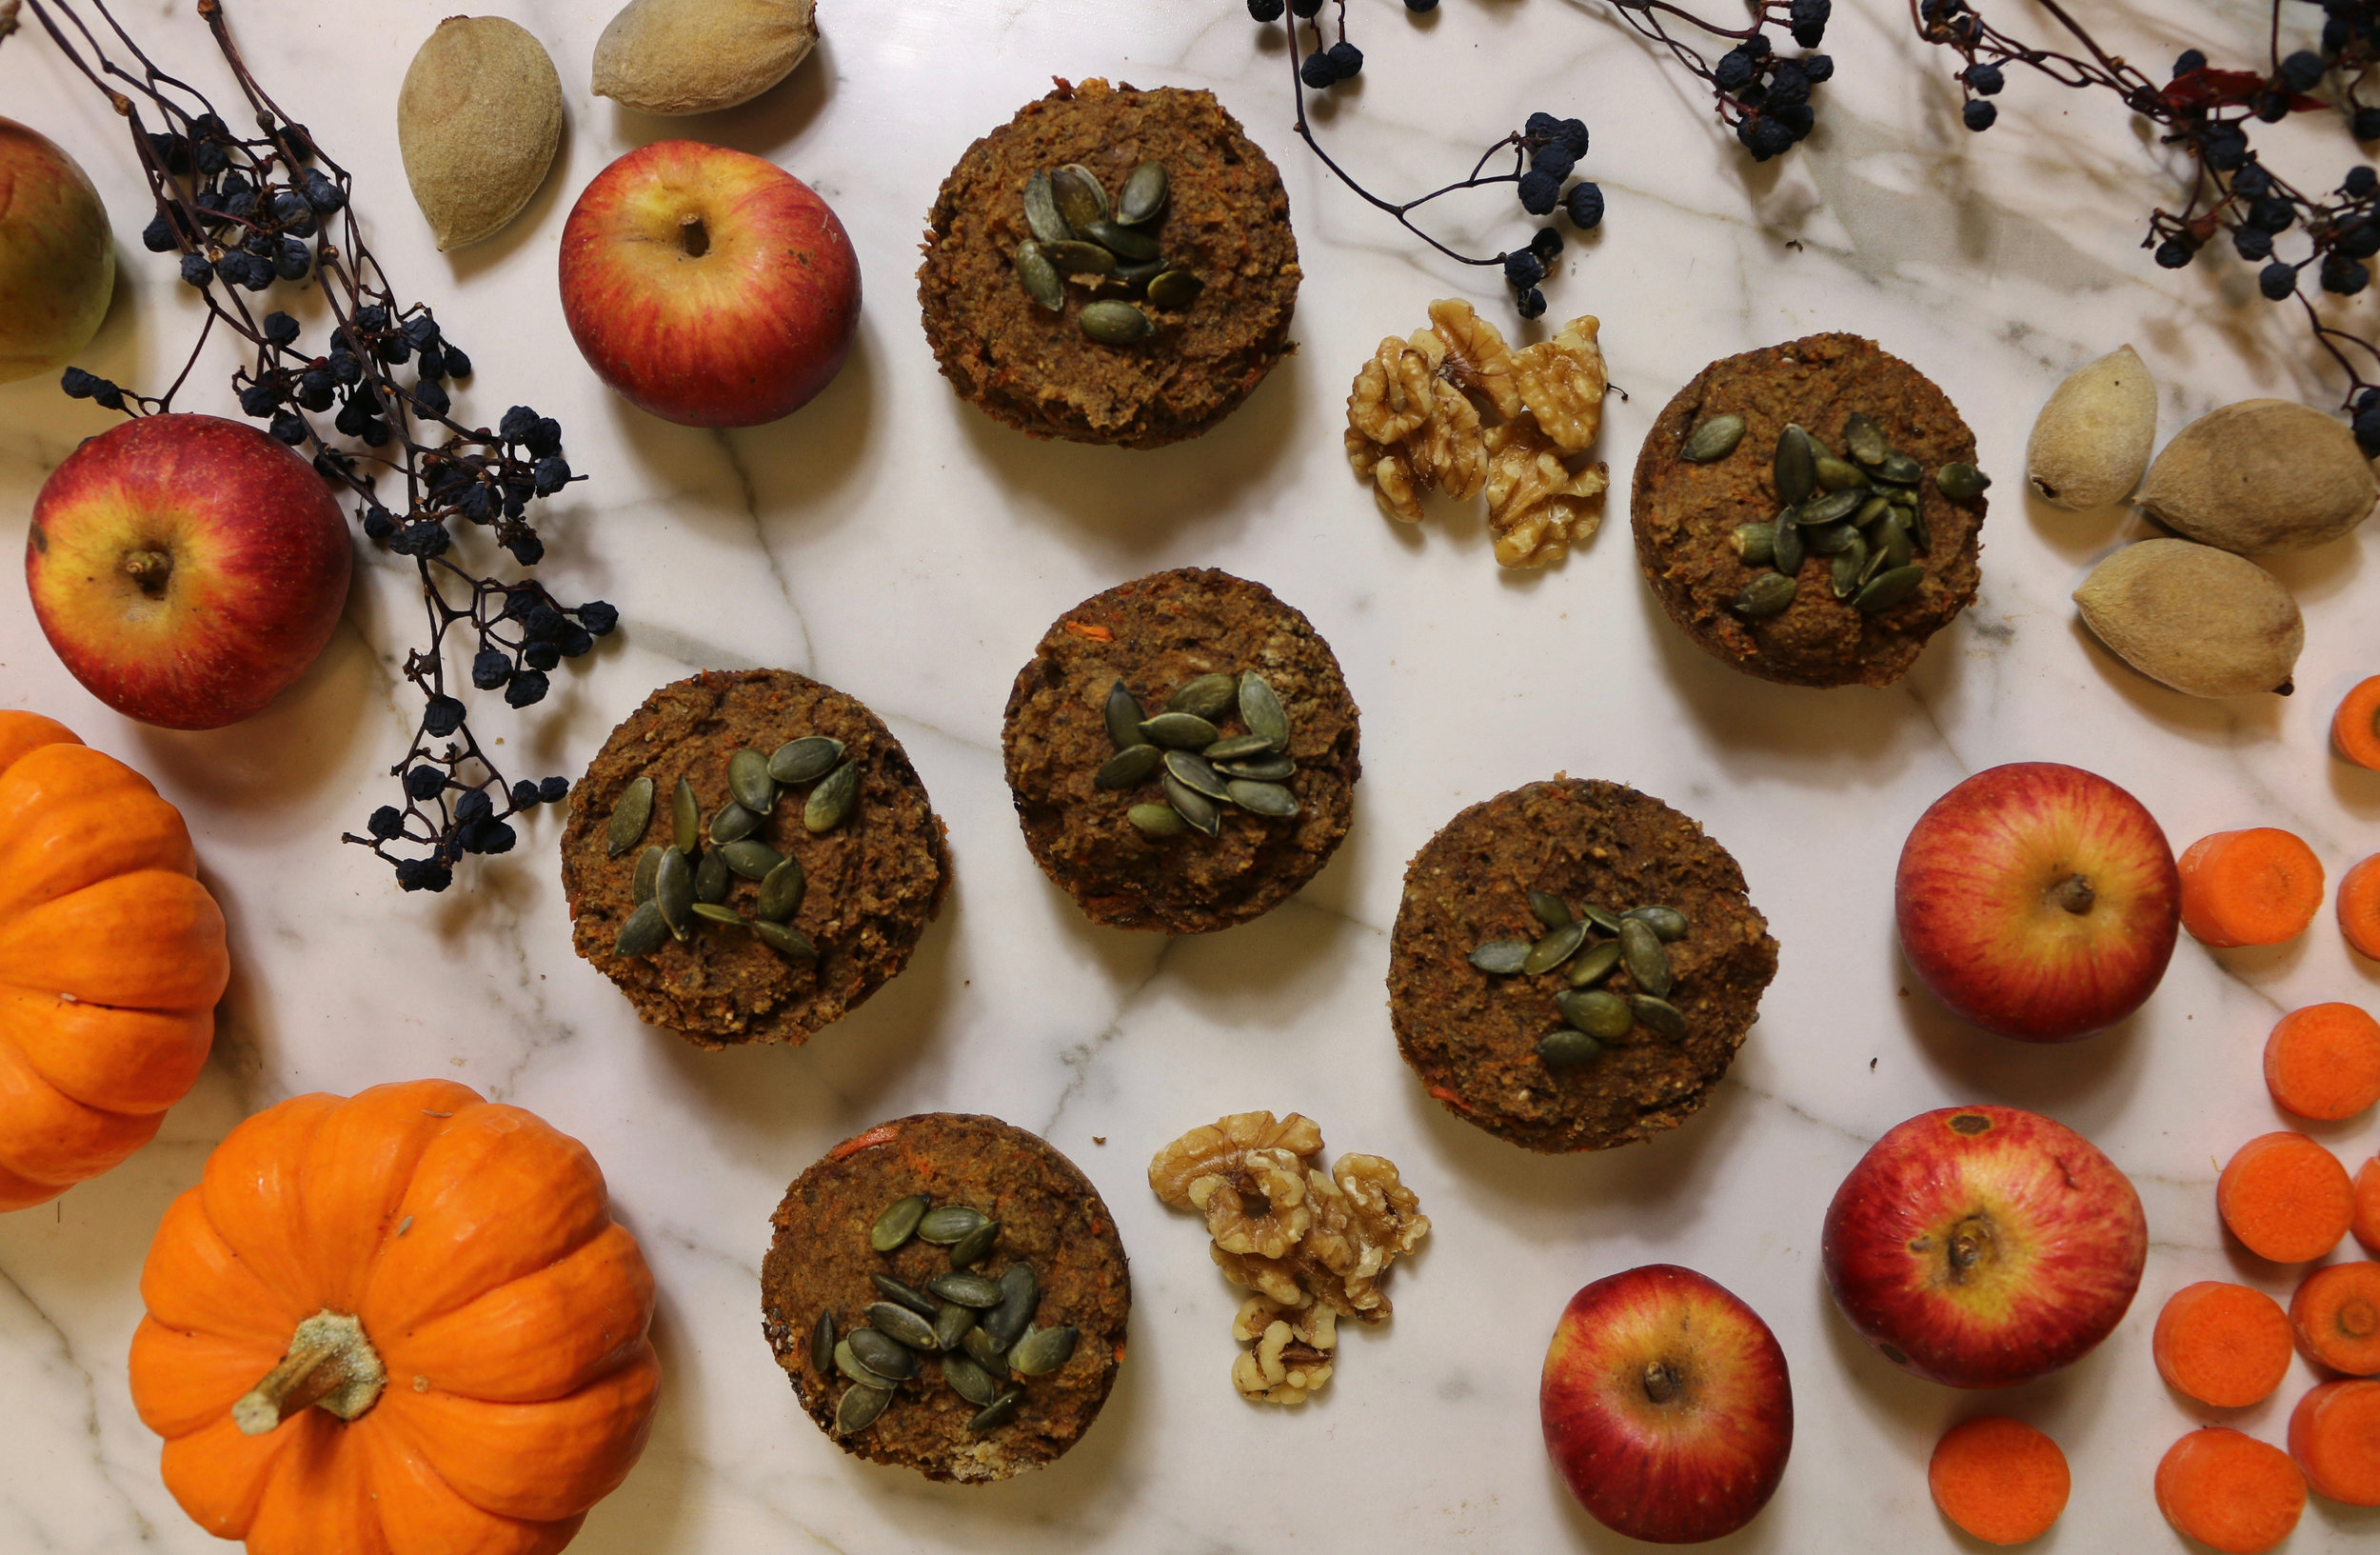 Carrot-Spiced-Apple-Sauce-Muffins-culinarywitch.jpg